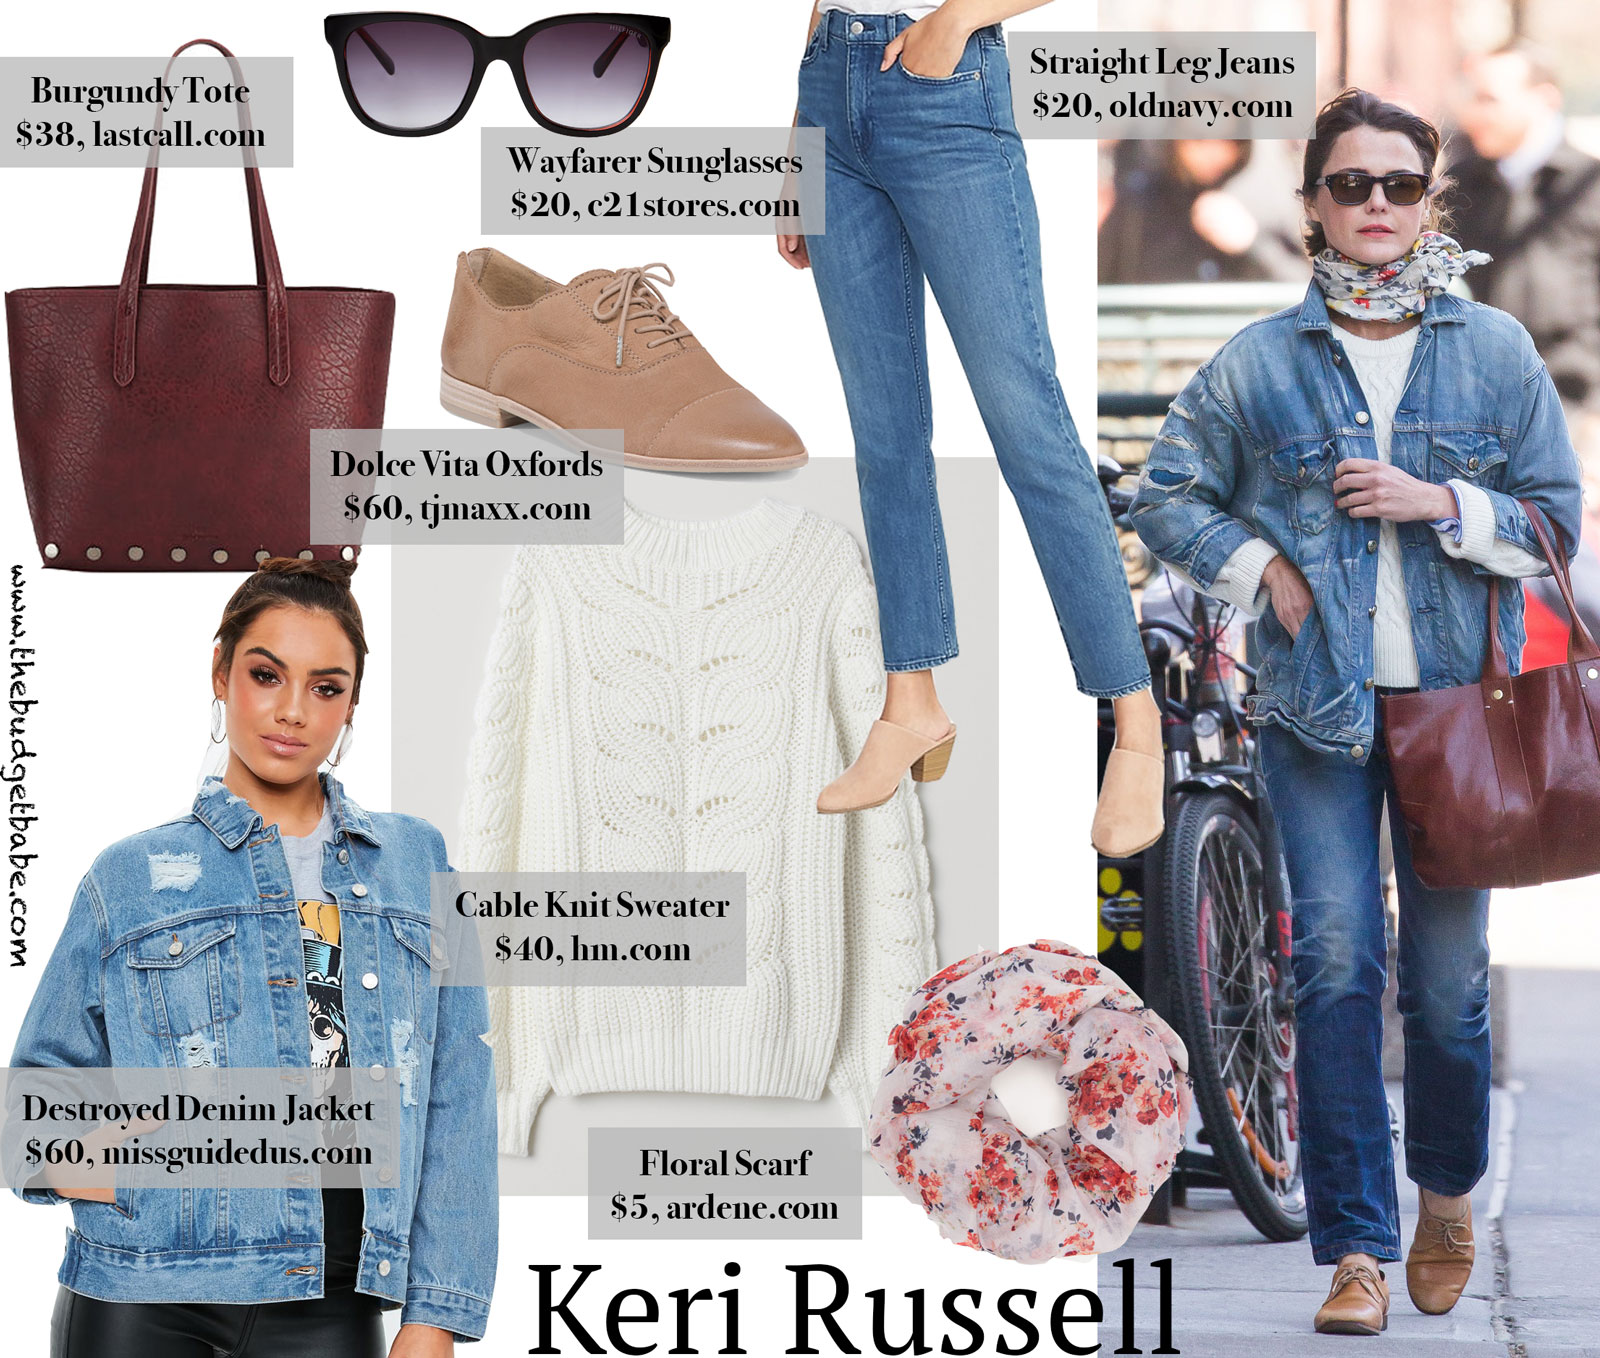 Keri Russell's Denim Jacket and Oxfords Look for Less